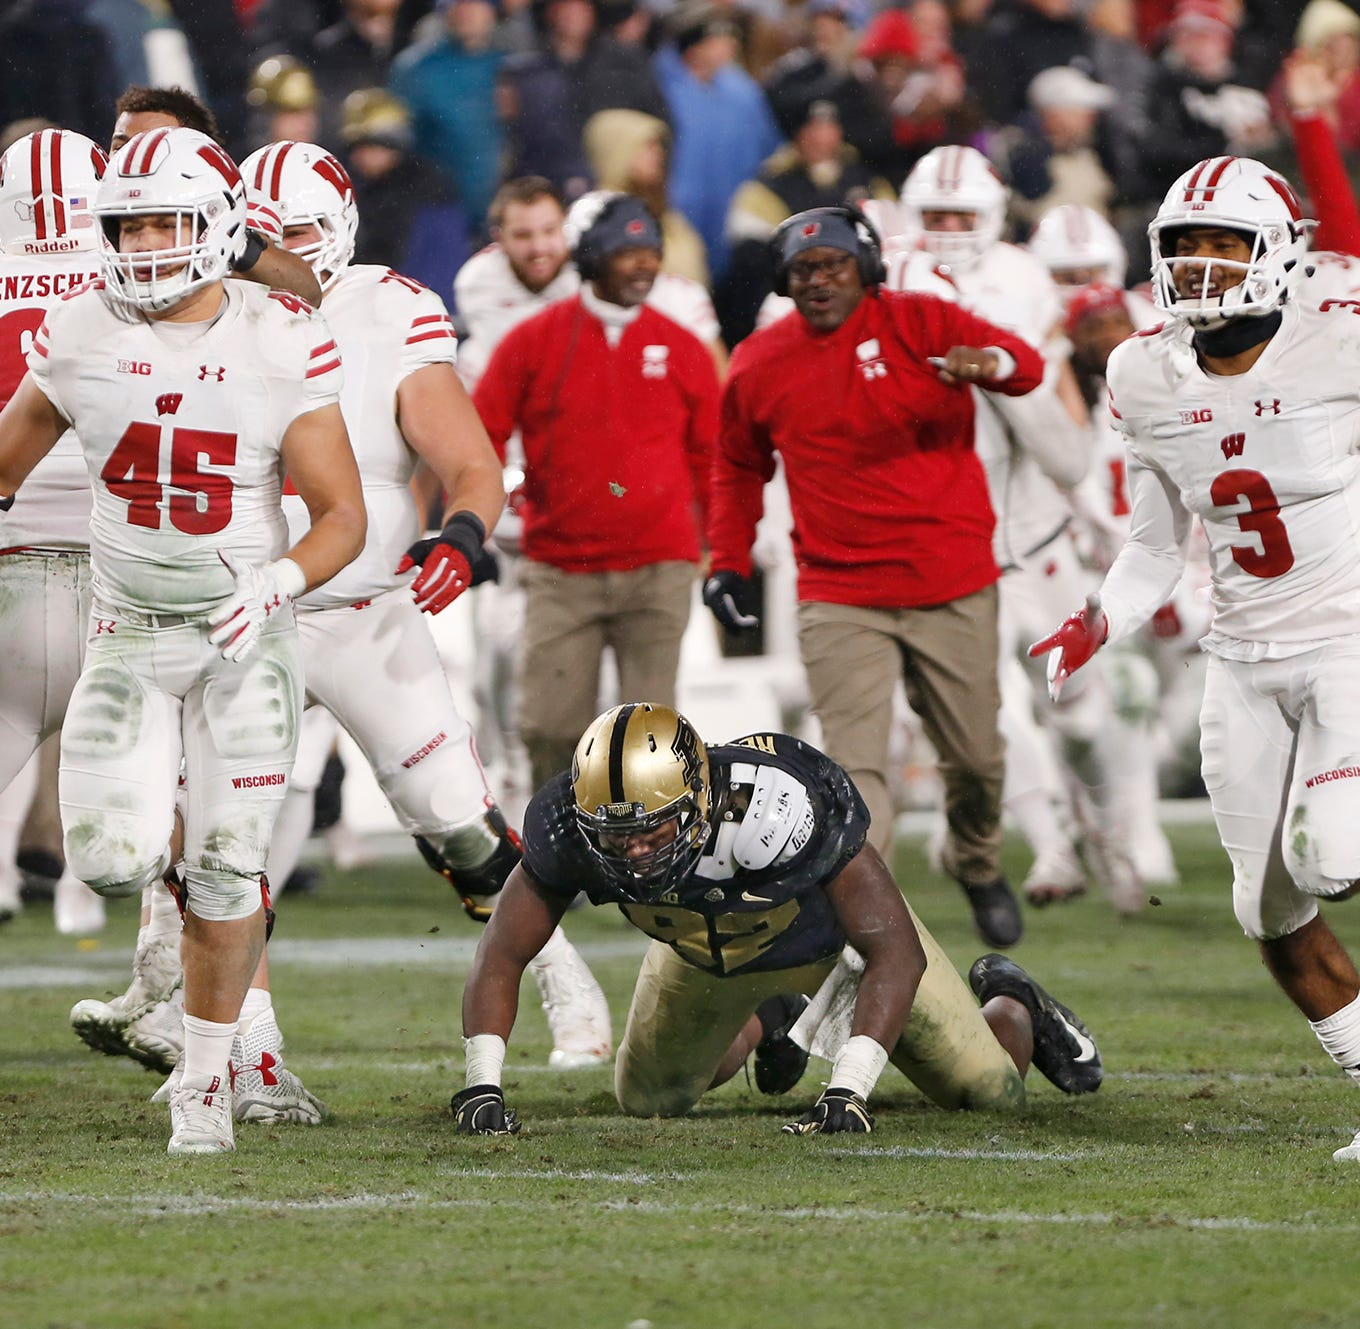 Purdue football's senior class denied special ending to Ross-Ade Stadium careers in 3 OT loss